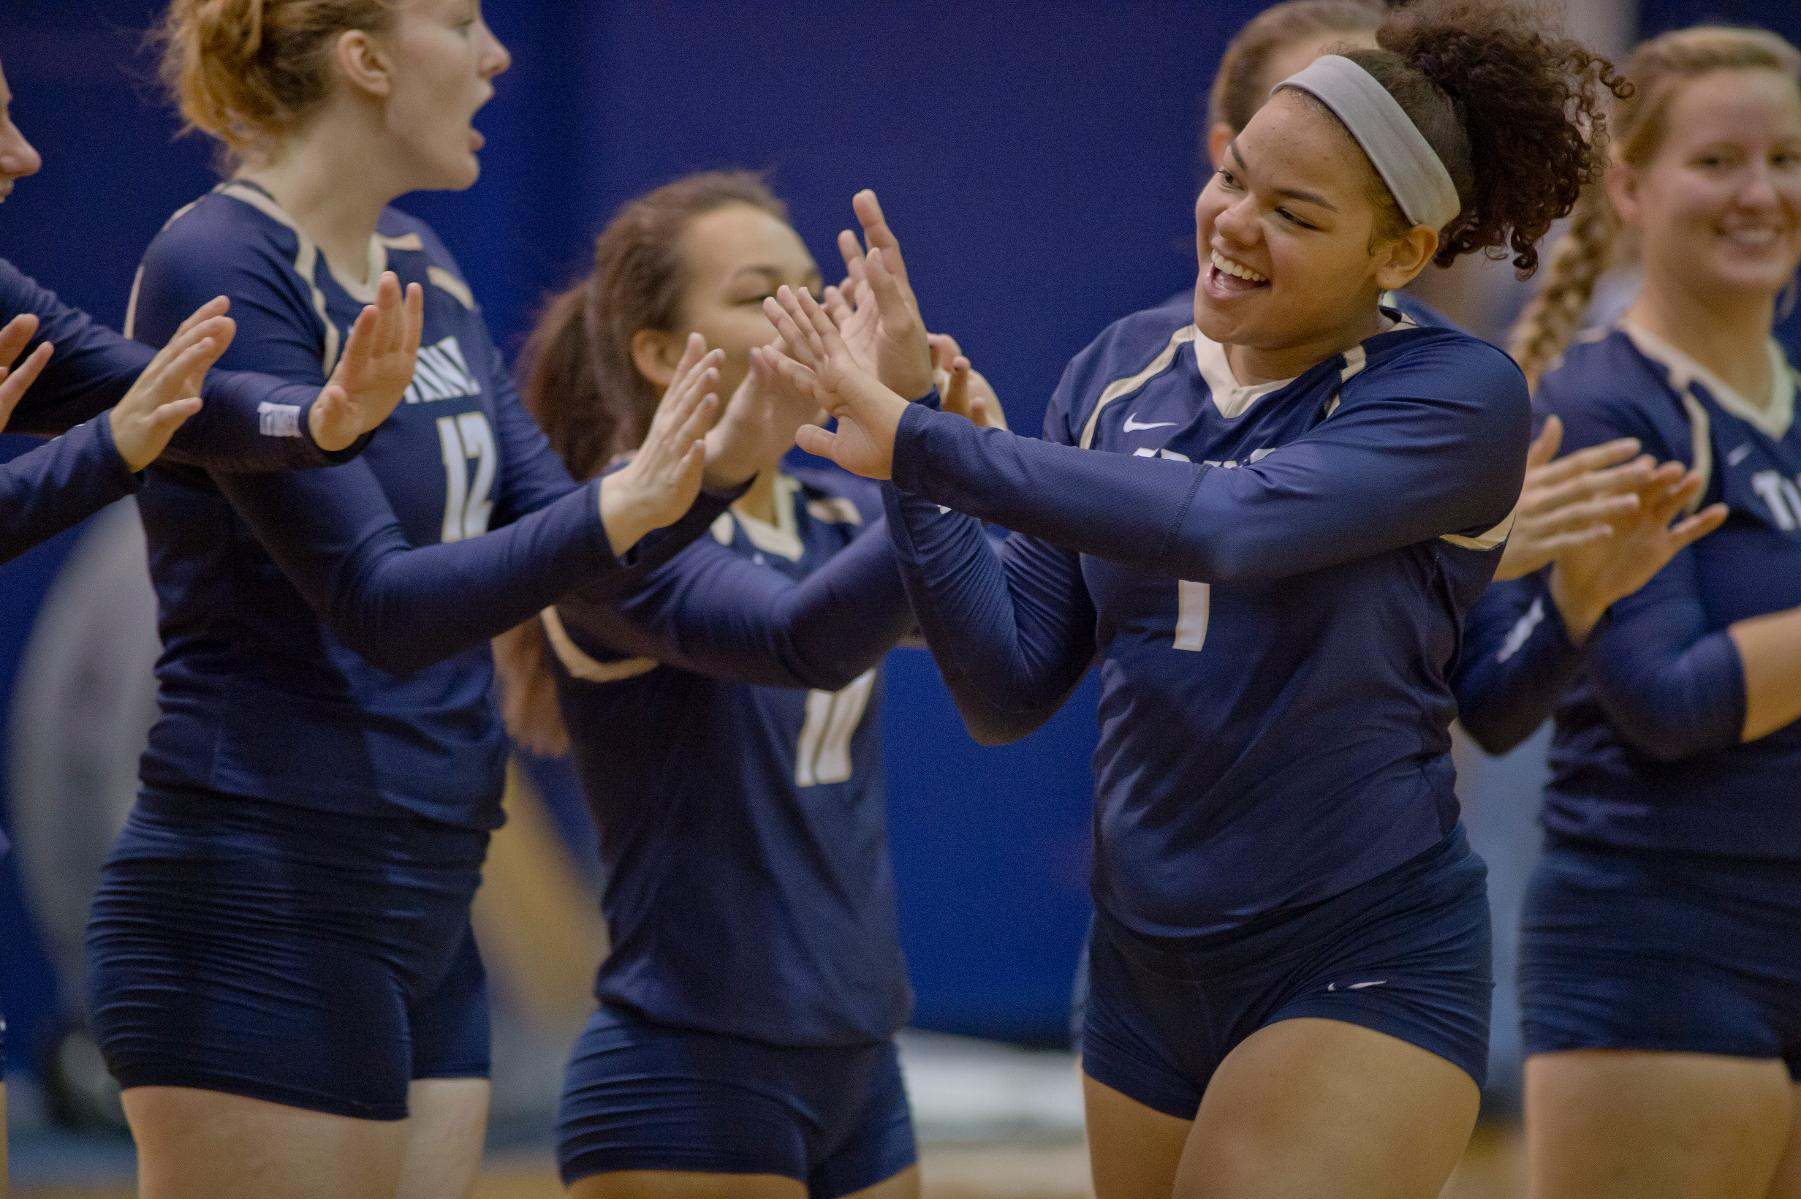 Thunder Volleyball Team Announces 2017 Schedule